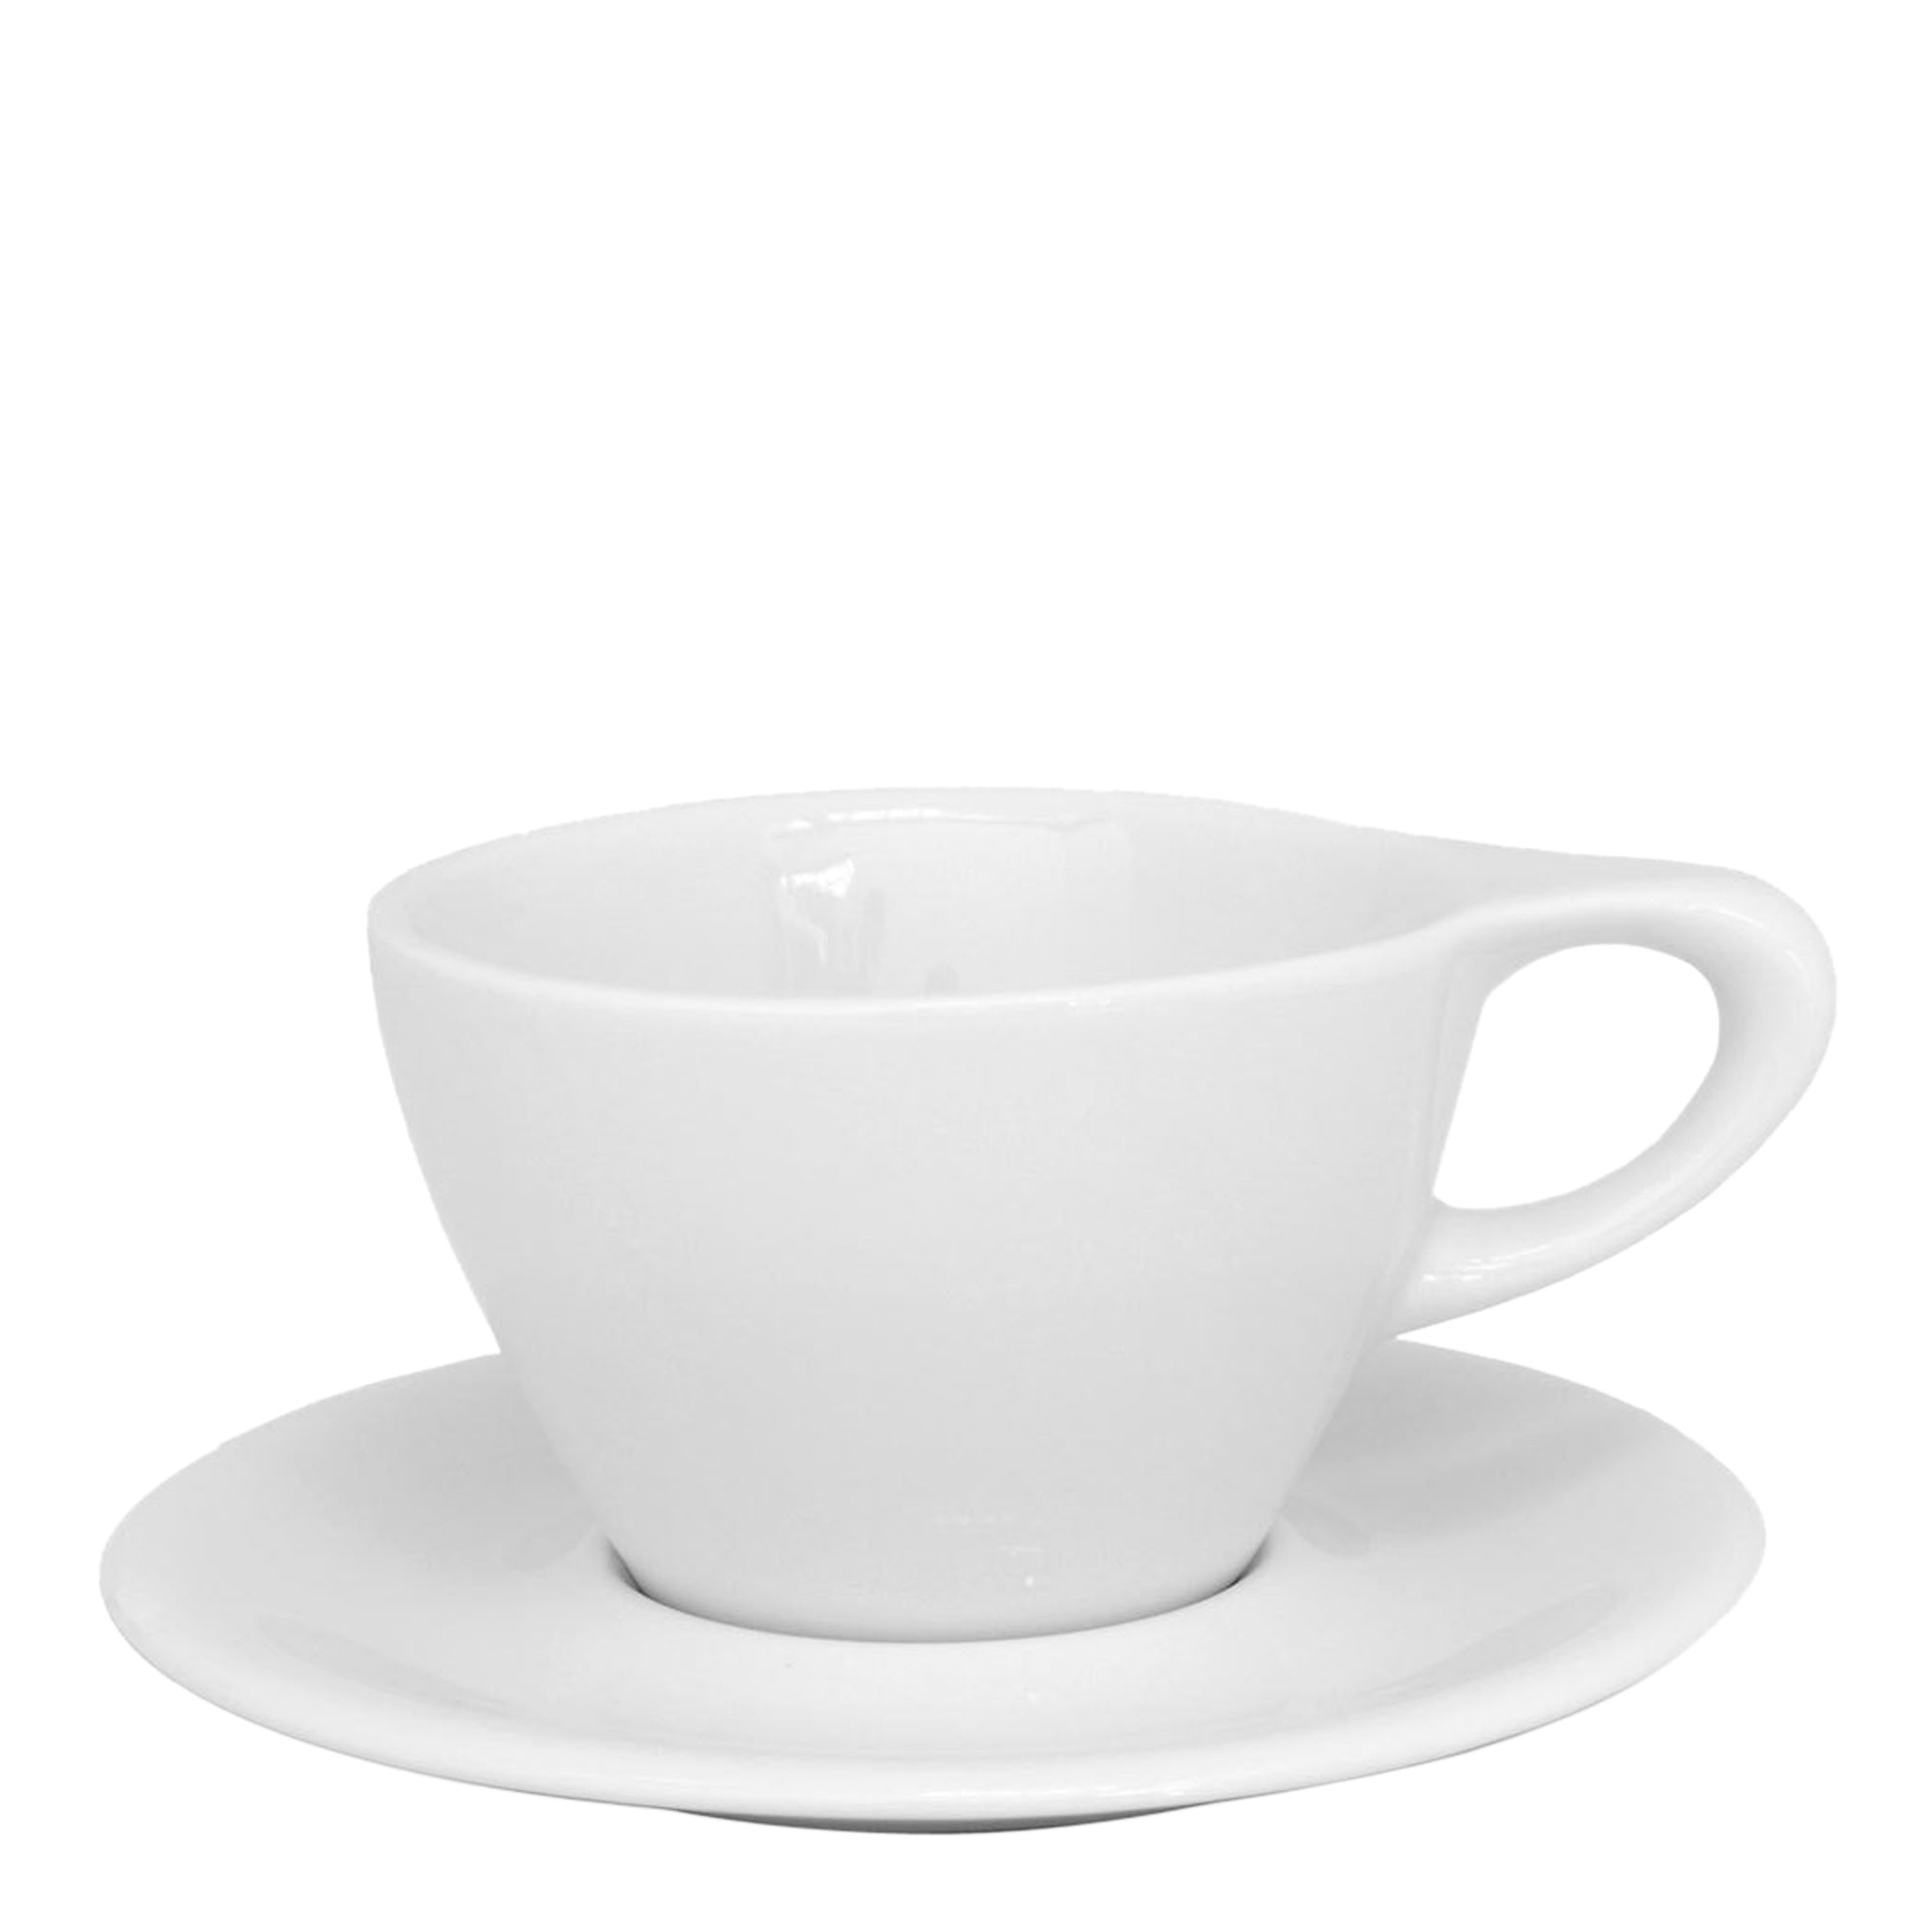 Porcelain Cup - Lino 5oz/15cl Single Cappu. - NotNeutral - Espresso Gear